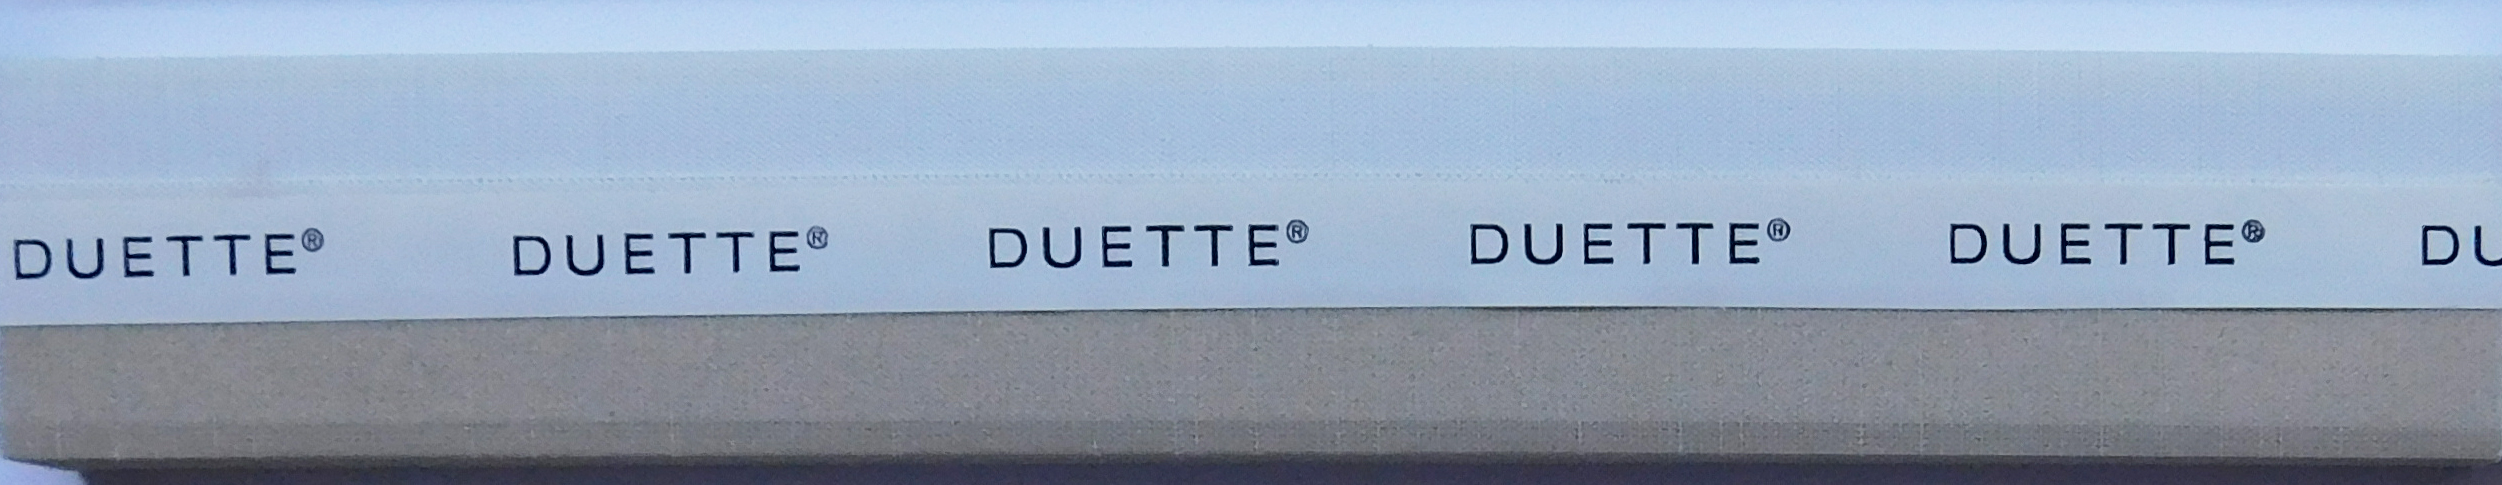 Royale Sponge Duette Blind Fabric sample